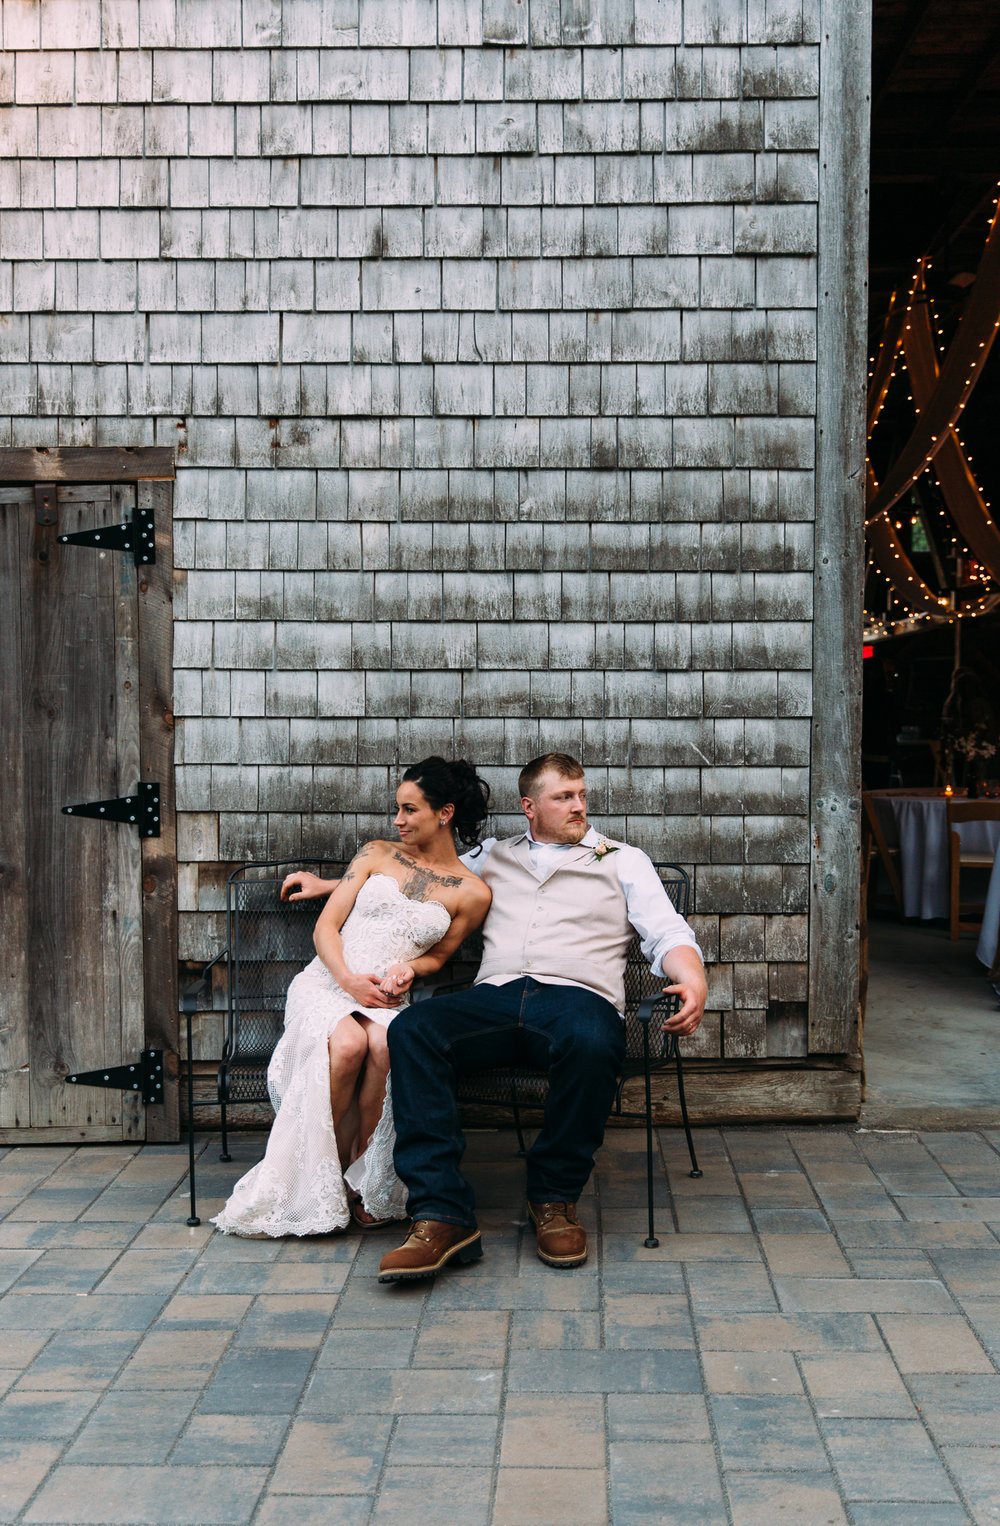 maine-couple-engagement-wedding-photography-dayton-a barn-hitching-post-rustic-summer-trendy.jpg